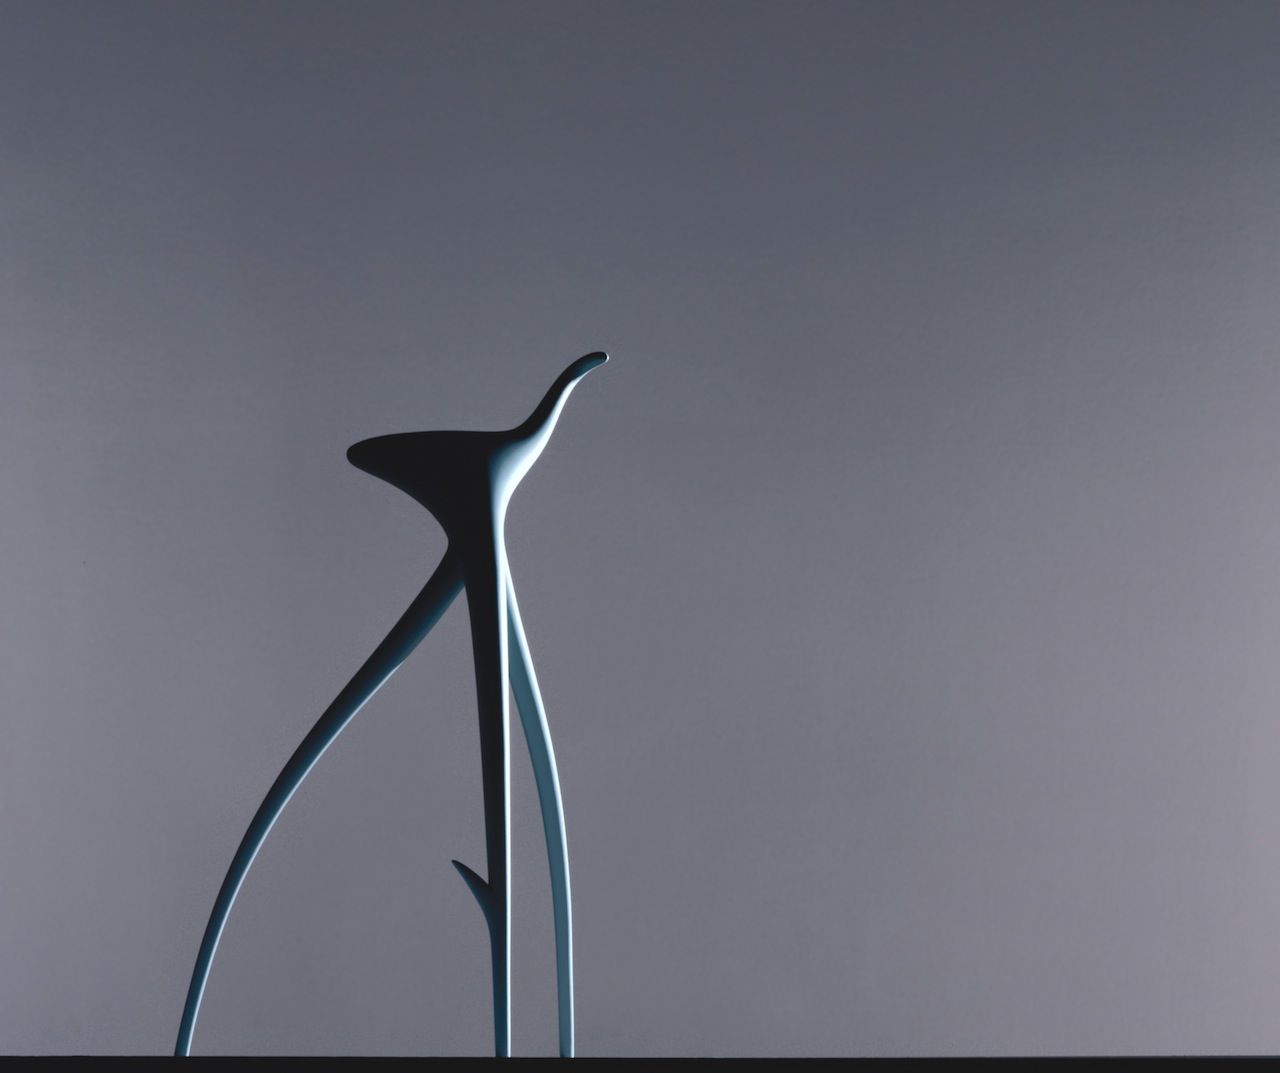 : W. W. Stool, Designed 1990 by Philippe Starck, French, born 1949,  Lacquered aluminum, 38 3/16 x 22 x 20 13/16 inches (97 x 55.9 x 52.8 cm), Philadelphia Museum of Art, Gift of Vitra International AG, 1997, © Vitra (www.vitra.com)